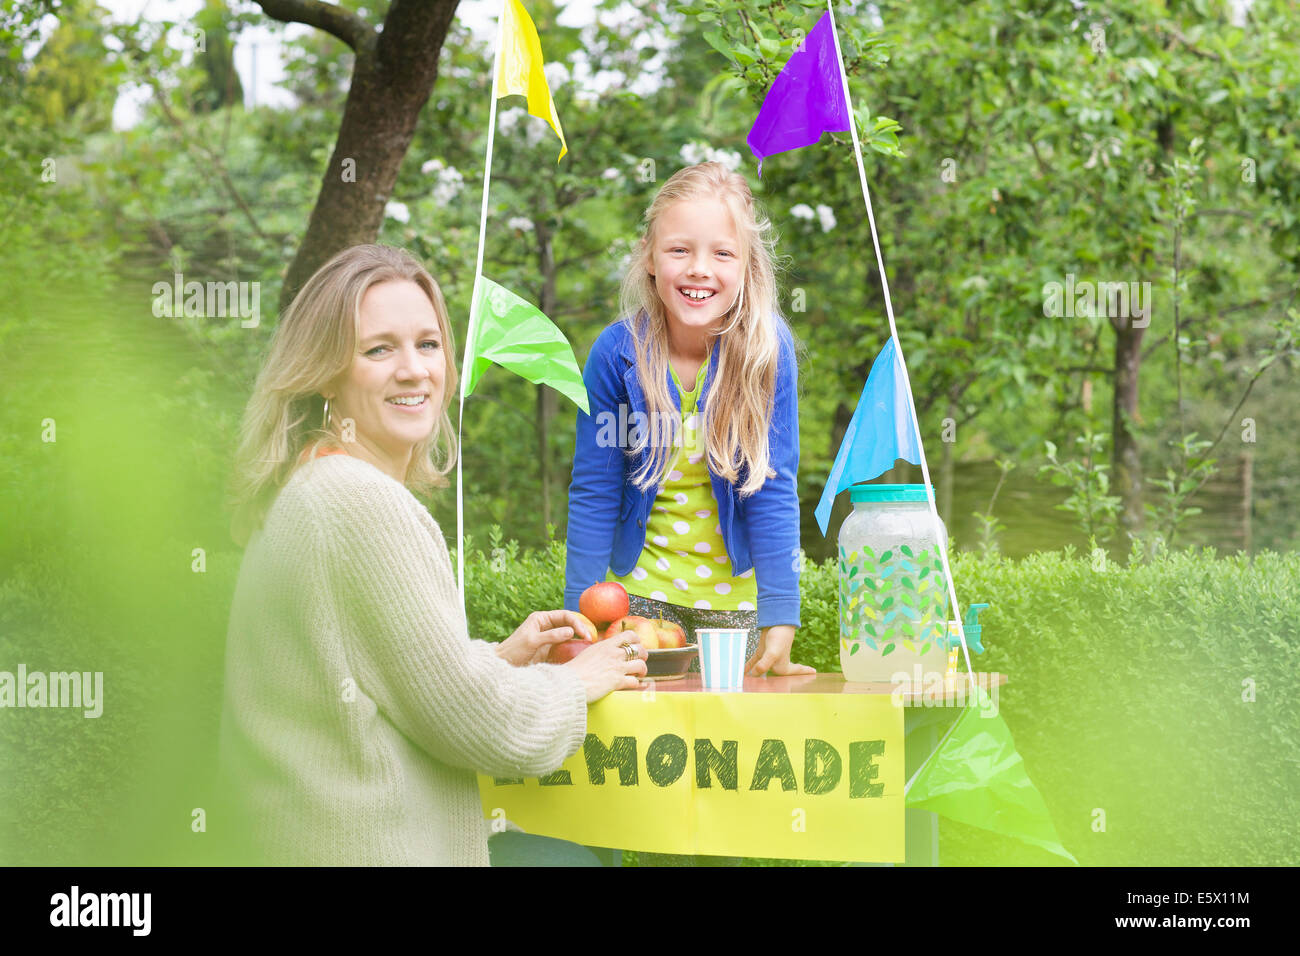 Mother buying lemonade from daughter's stand - Stock Image